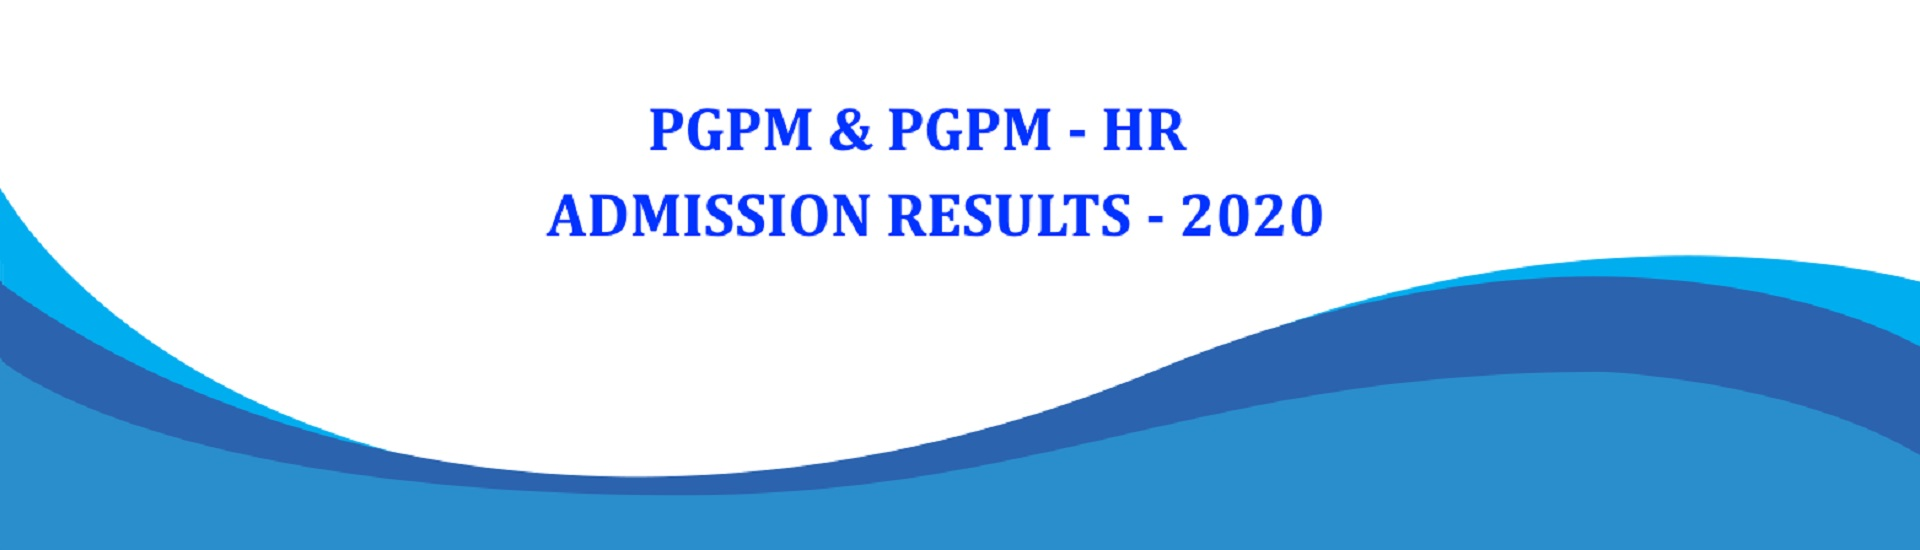 PGPM & PGPM-HR Admission Result - 2020